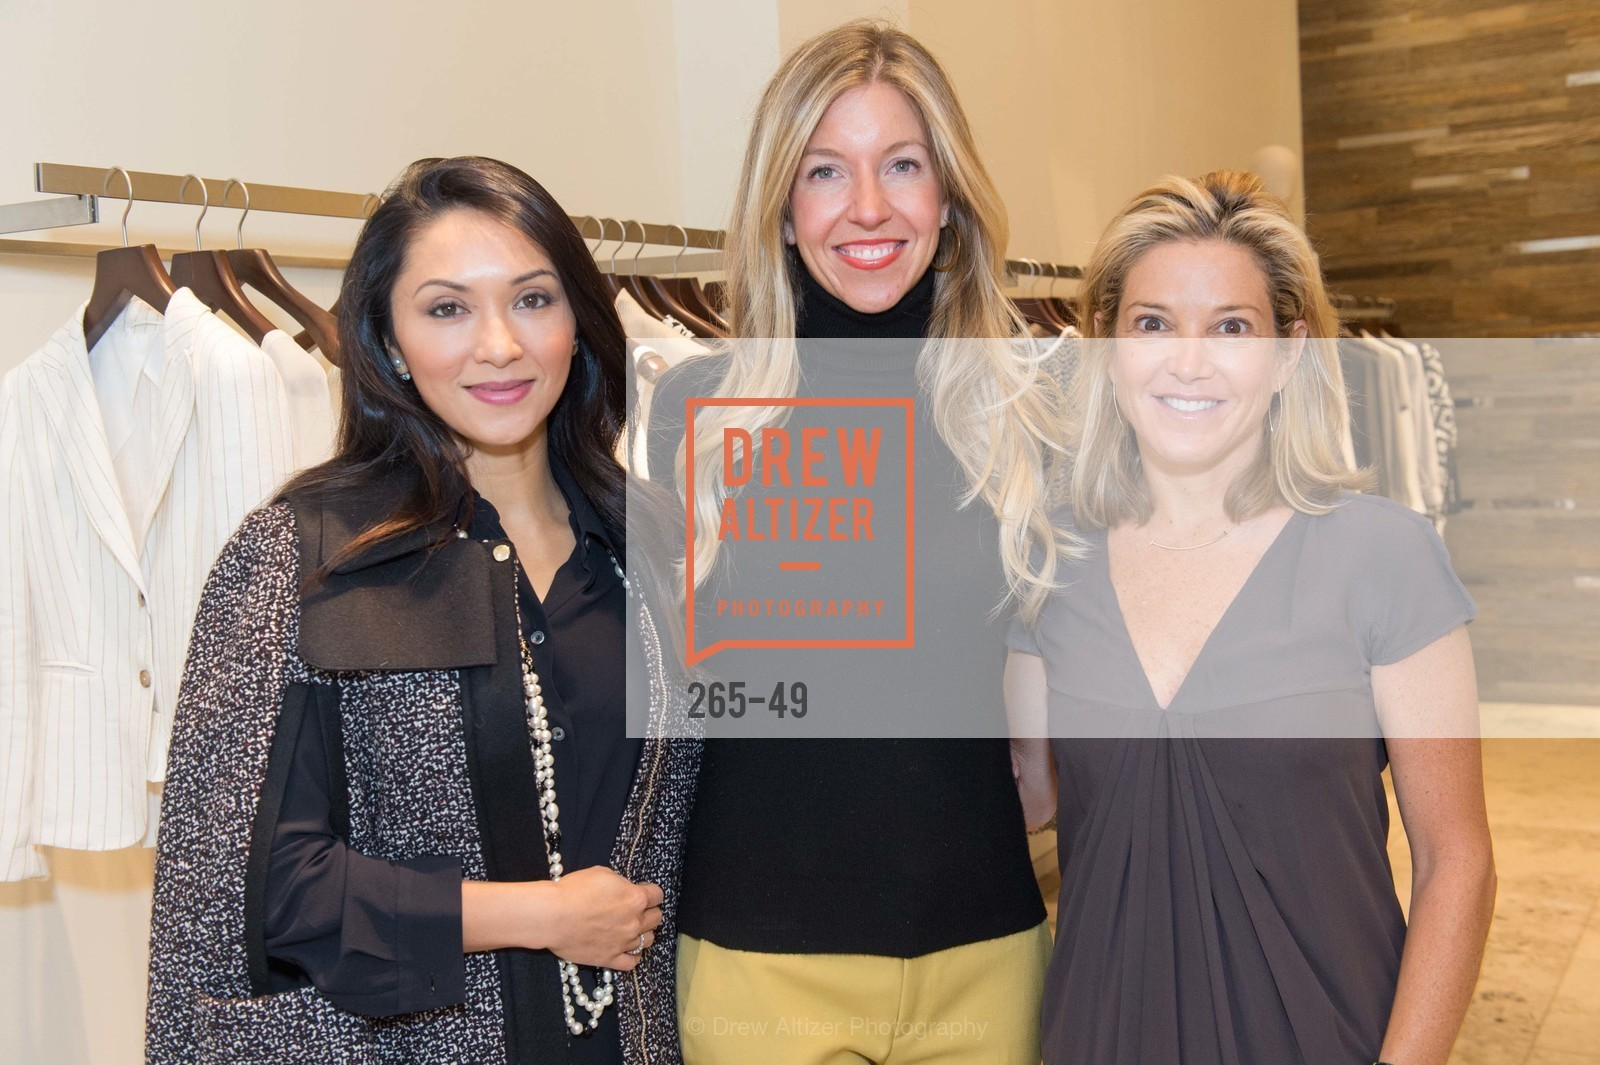 Demi Seguritan, Jane Gruber, Kathryn Lasater, Luncheon Hosted by Max Mara, Max Mara. 175 Post St, San Francisco, CA 94108, April 21st, 2015,Drew Altizer, Drew Altizer Photography, full-service agency, private events, San Francisco photographer, photographer california